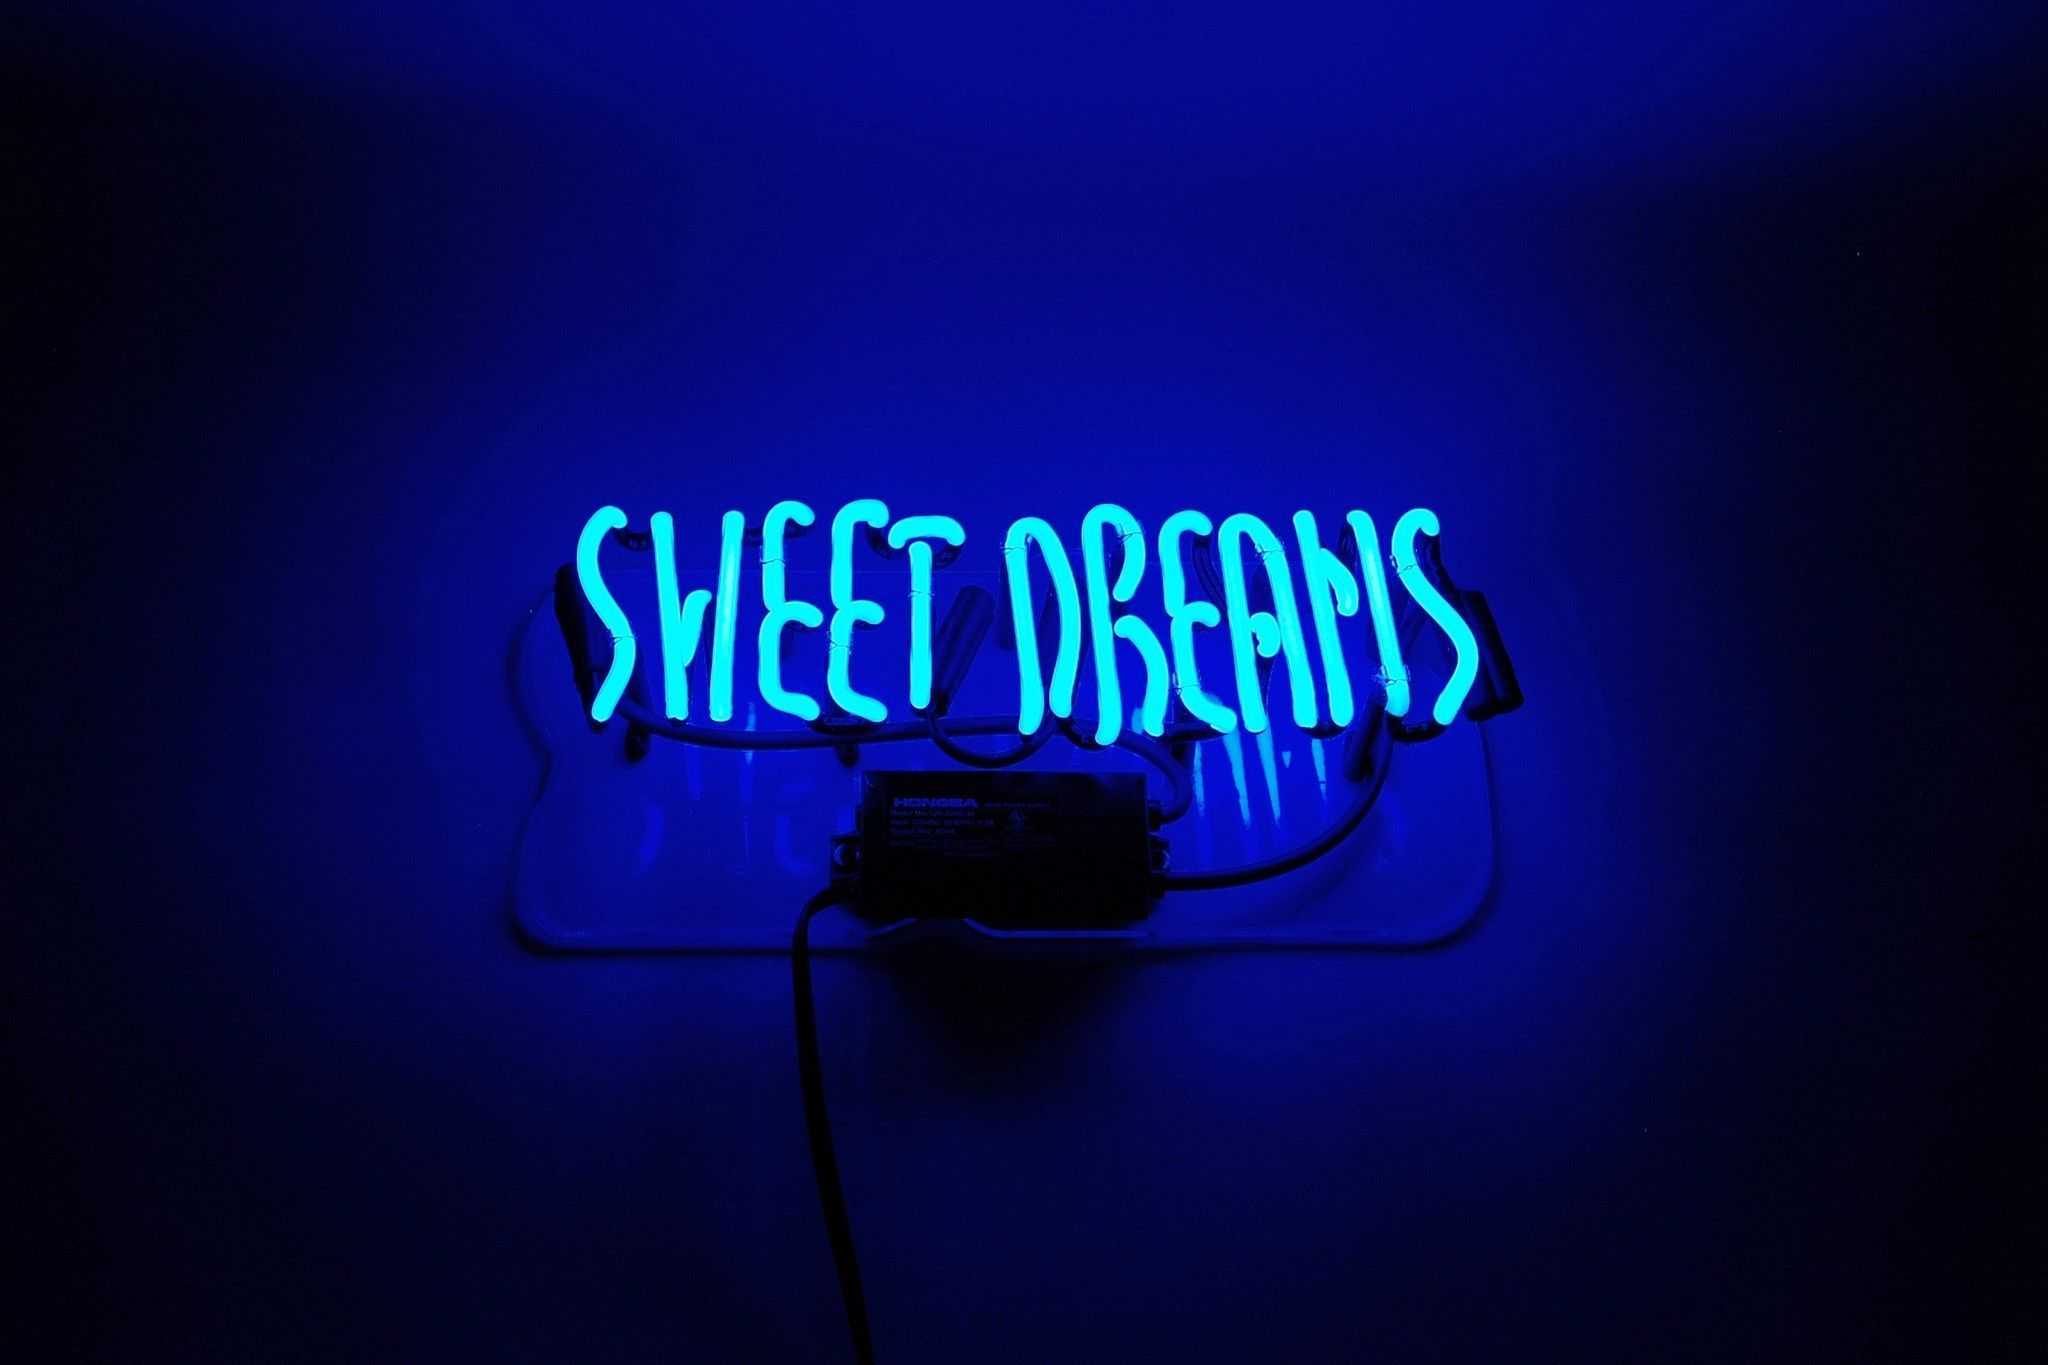 Neon Sign Wallpapers Top Free Neon Sign Backgrounds Wallpaperaccess Neon Wallpaper Neon Signs Neon Words Electric blue neon neon wallpaper